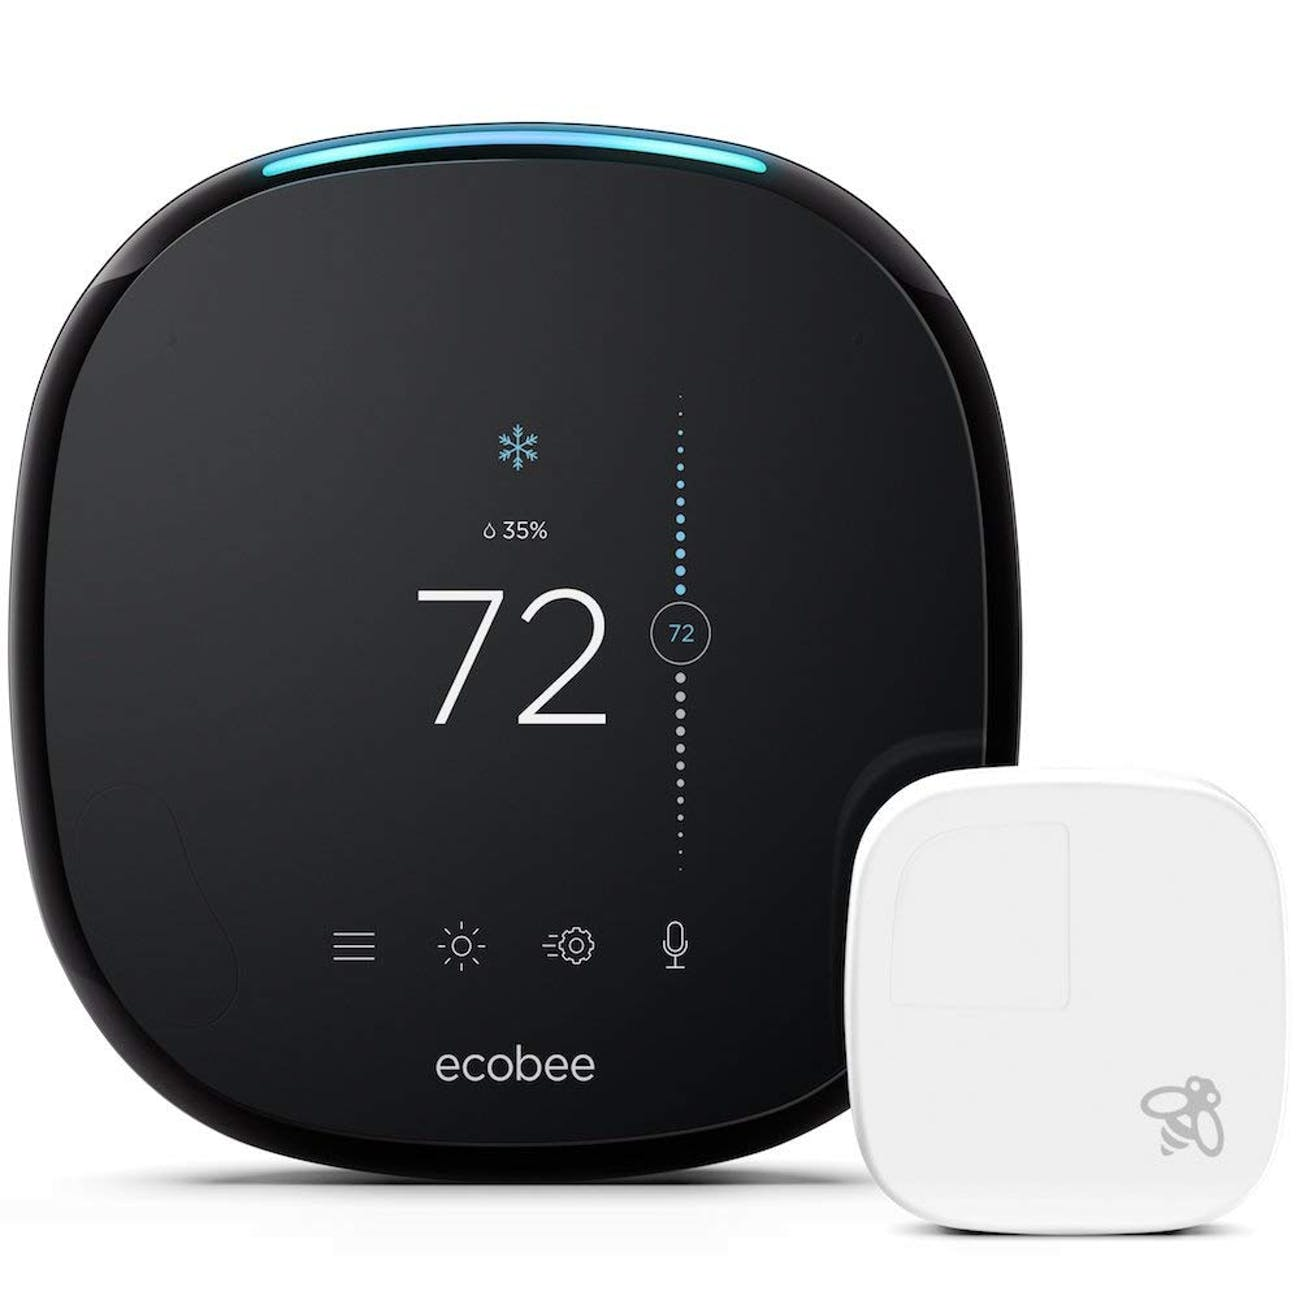 Ecobee4 Smart Thermostat with Alexa built-in